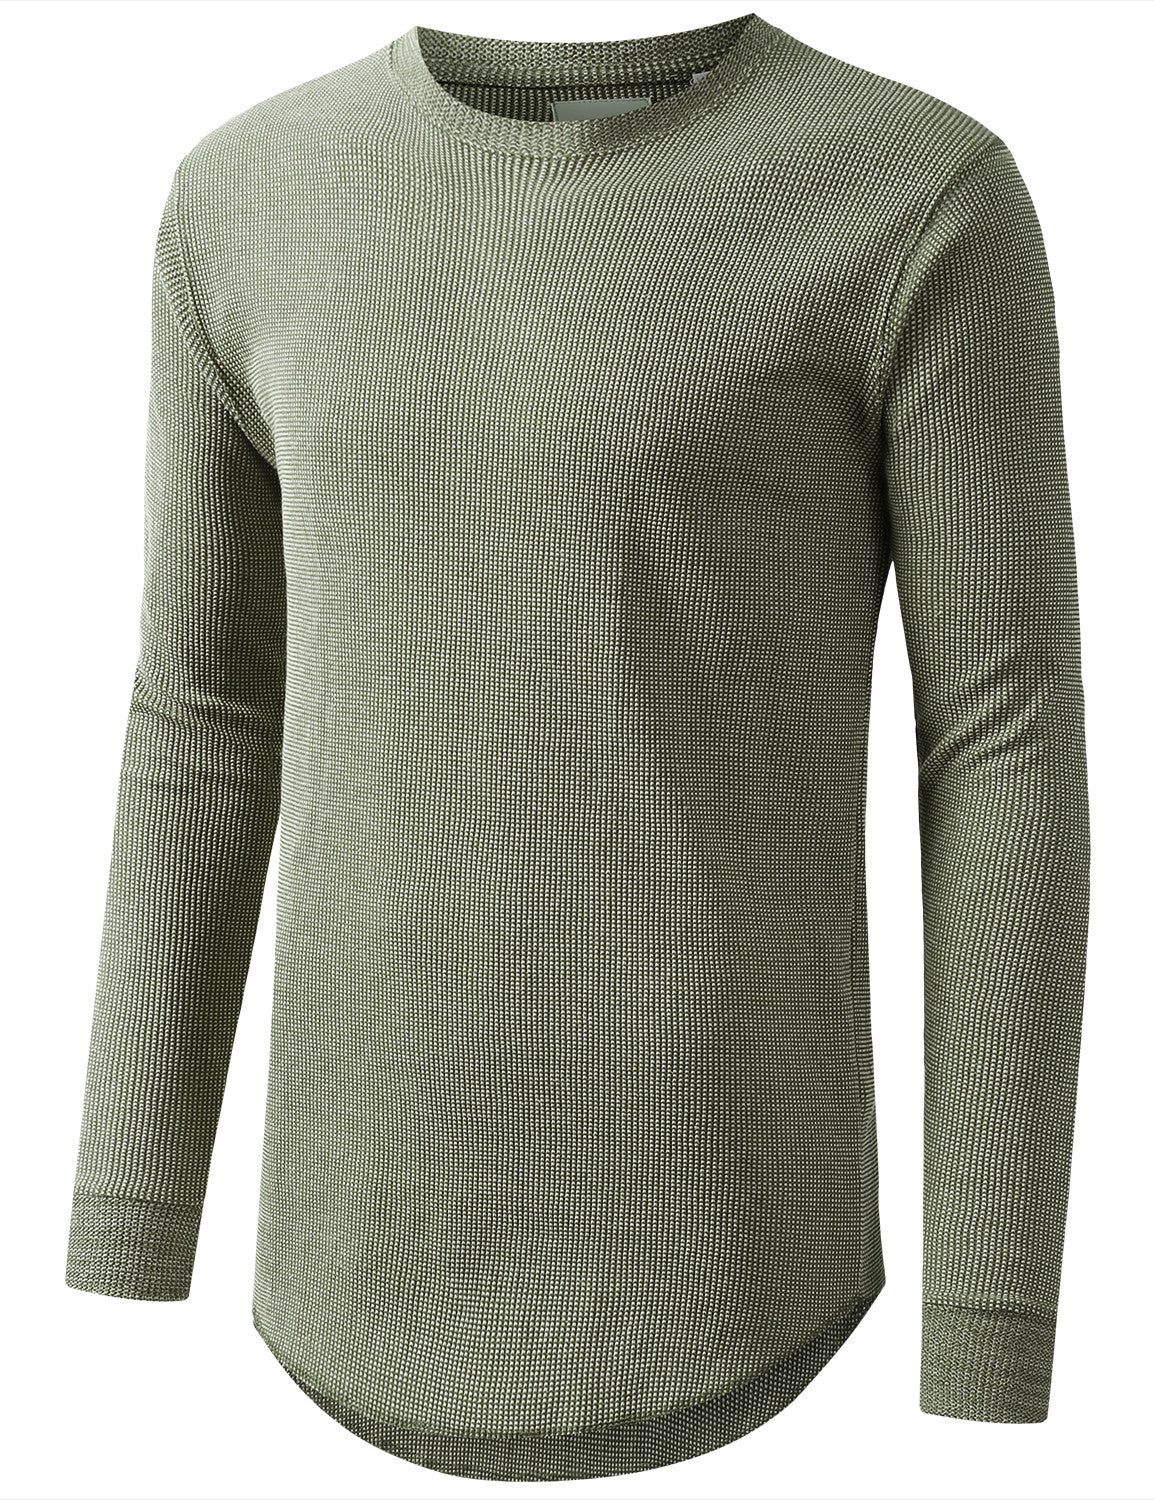 OLIVE Raw Edge Thermal Long Sleeve Tshirt - URBANCREWS